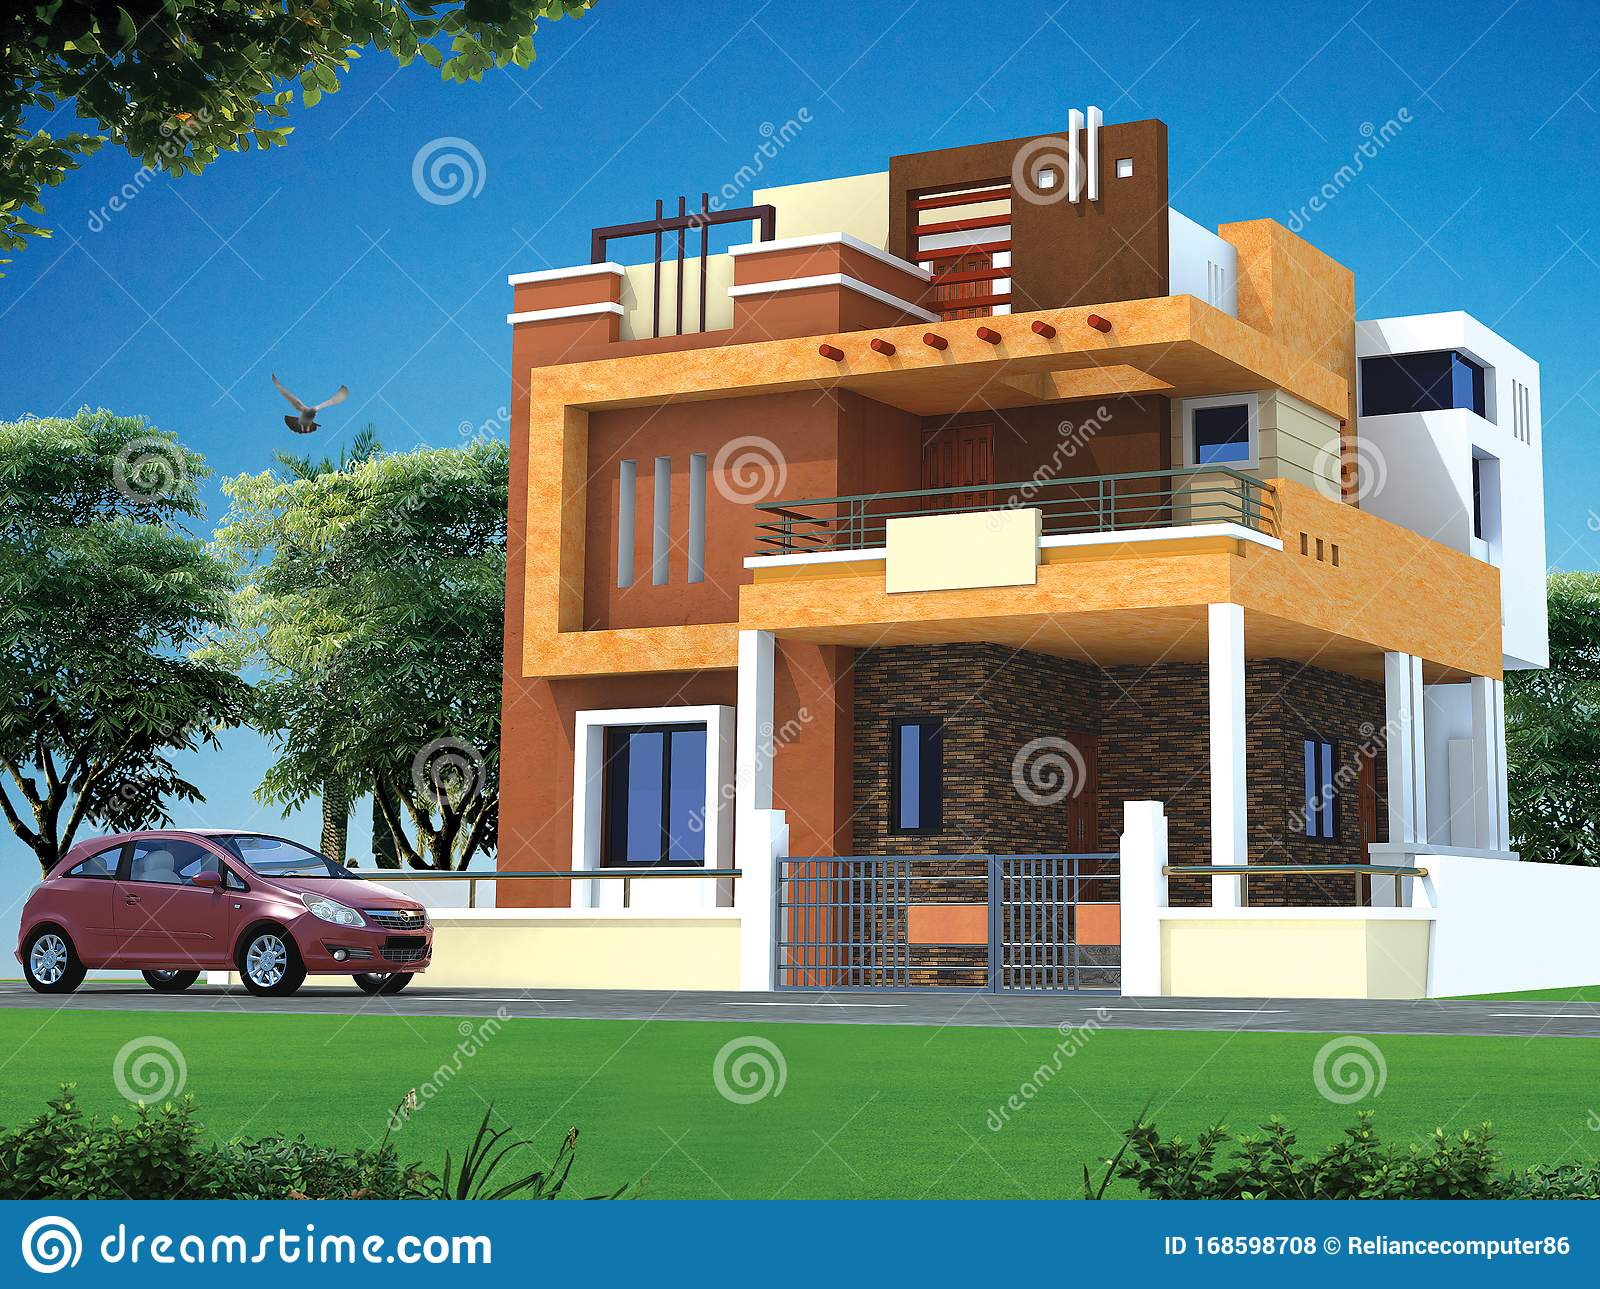 Best House Design Images Best House Images Latest House Images Design Stock Illustration Illustration Of Dream Compact 168598708